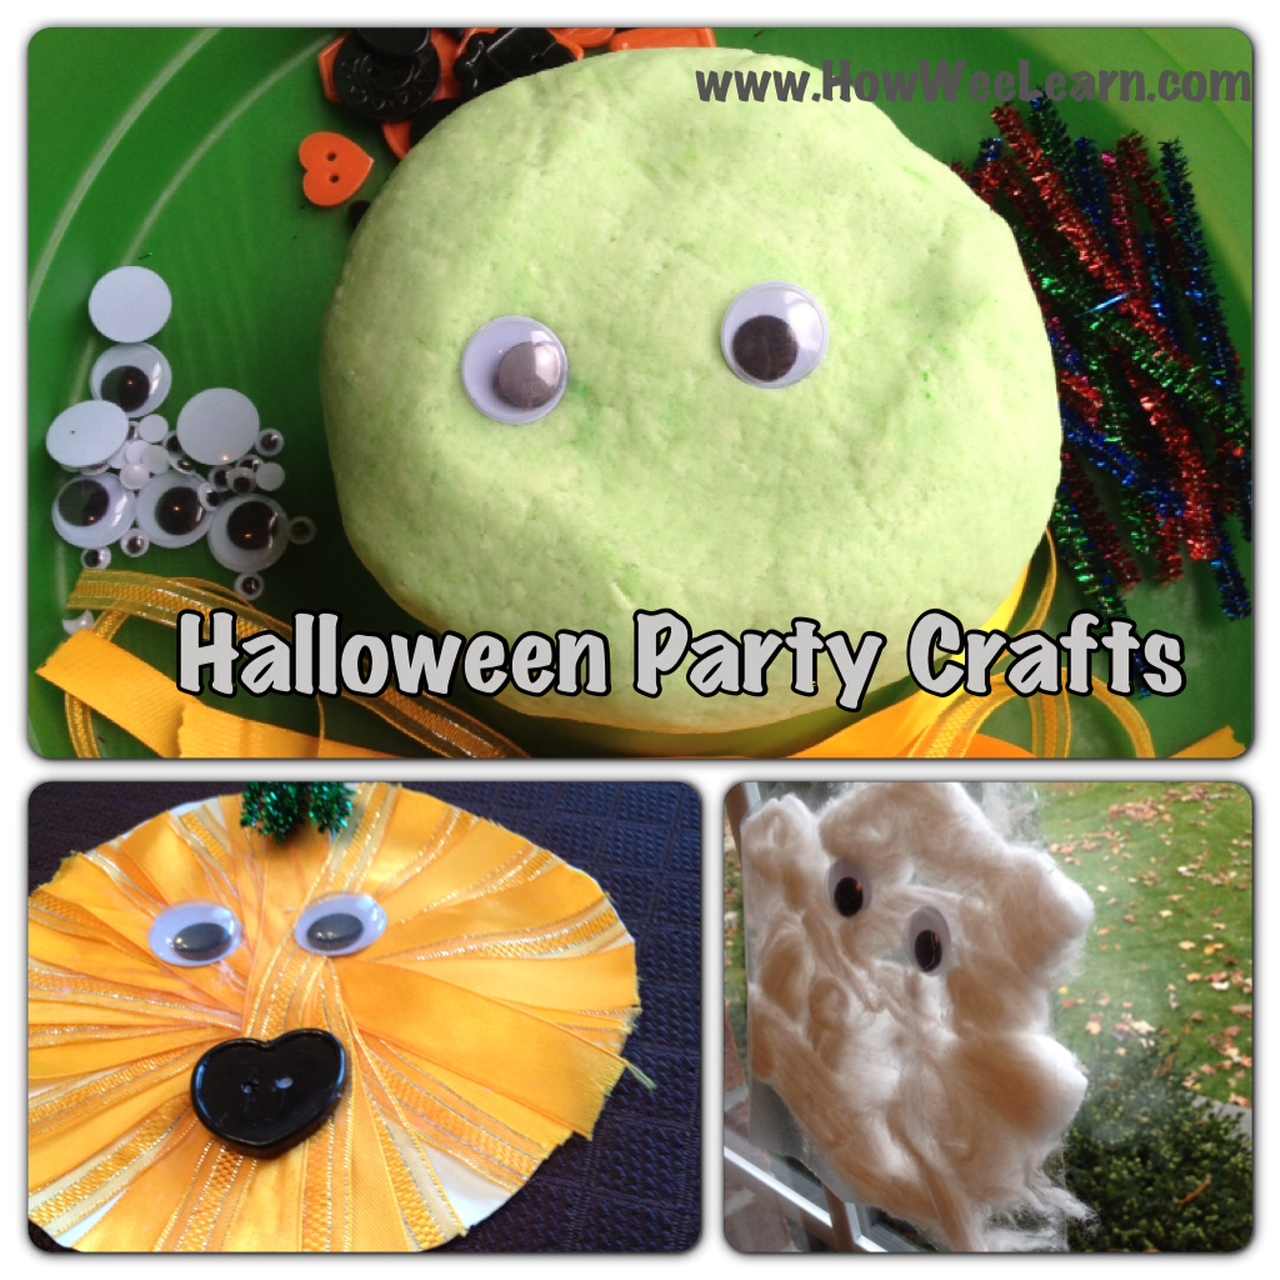 Halloween Party Crafts for Kids - Fun for ALL ages! - How Wee Learn